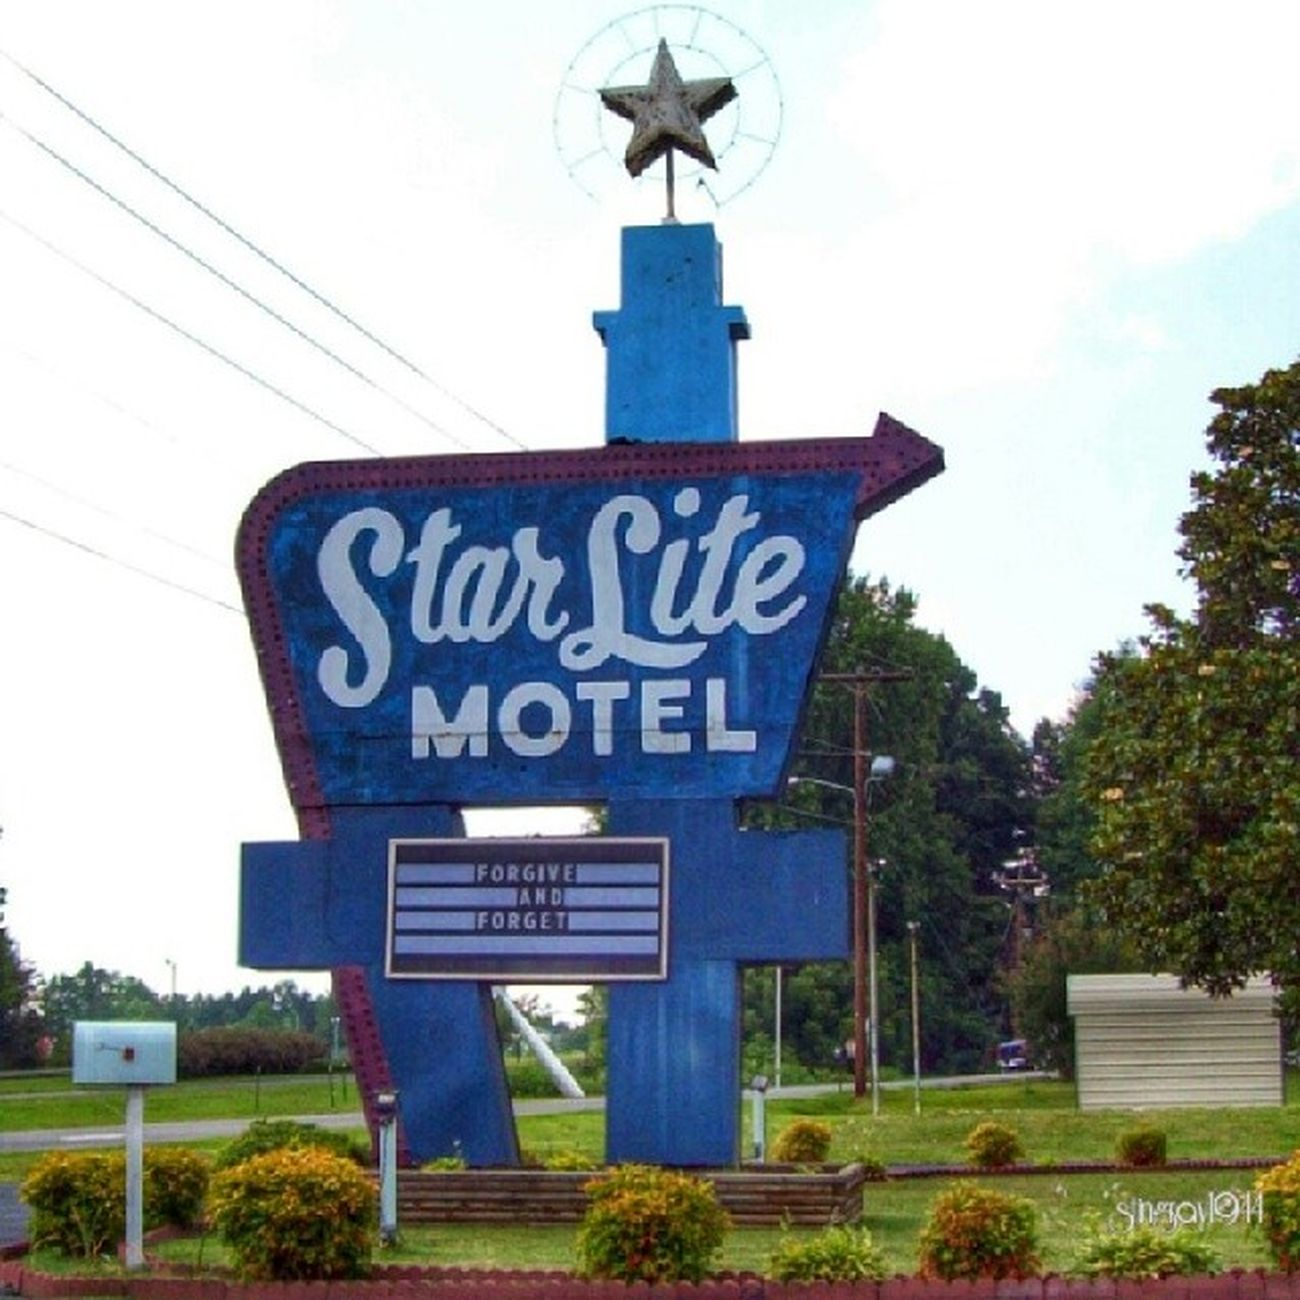 Star Lite in Mt. Airy, North Carolina Nothin' could be finer than to be in Carolina in the morning Instatune Sing_me_a_picture Signswitharrows Shutterbug_collective signgeeks trailblazers_rurex nothingisordinary nexus_nation patina_perfection pixoddinary bipolaroid_asylum exploring_shotz heyfred_lookatthis icu_usa infamous_family ipulledoverforthis igaa jj_unitedstates rous_roadsigns royalsnappingartists rsa_streetview rurex_lady